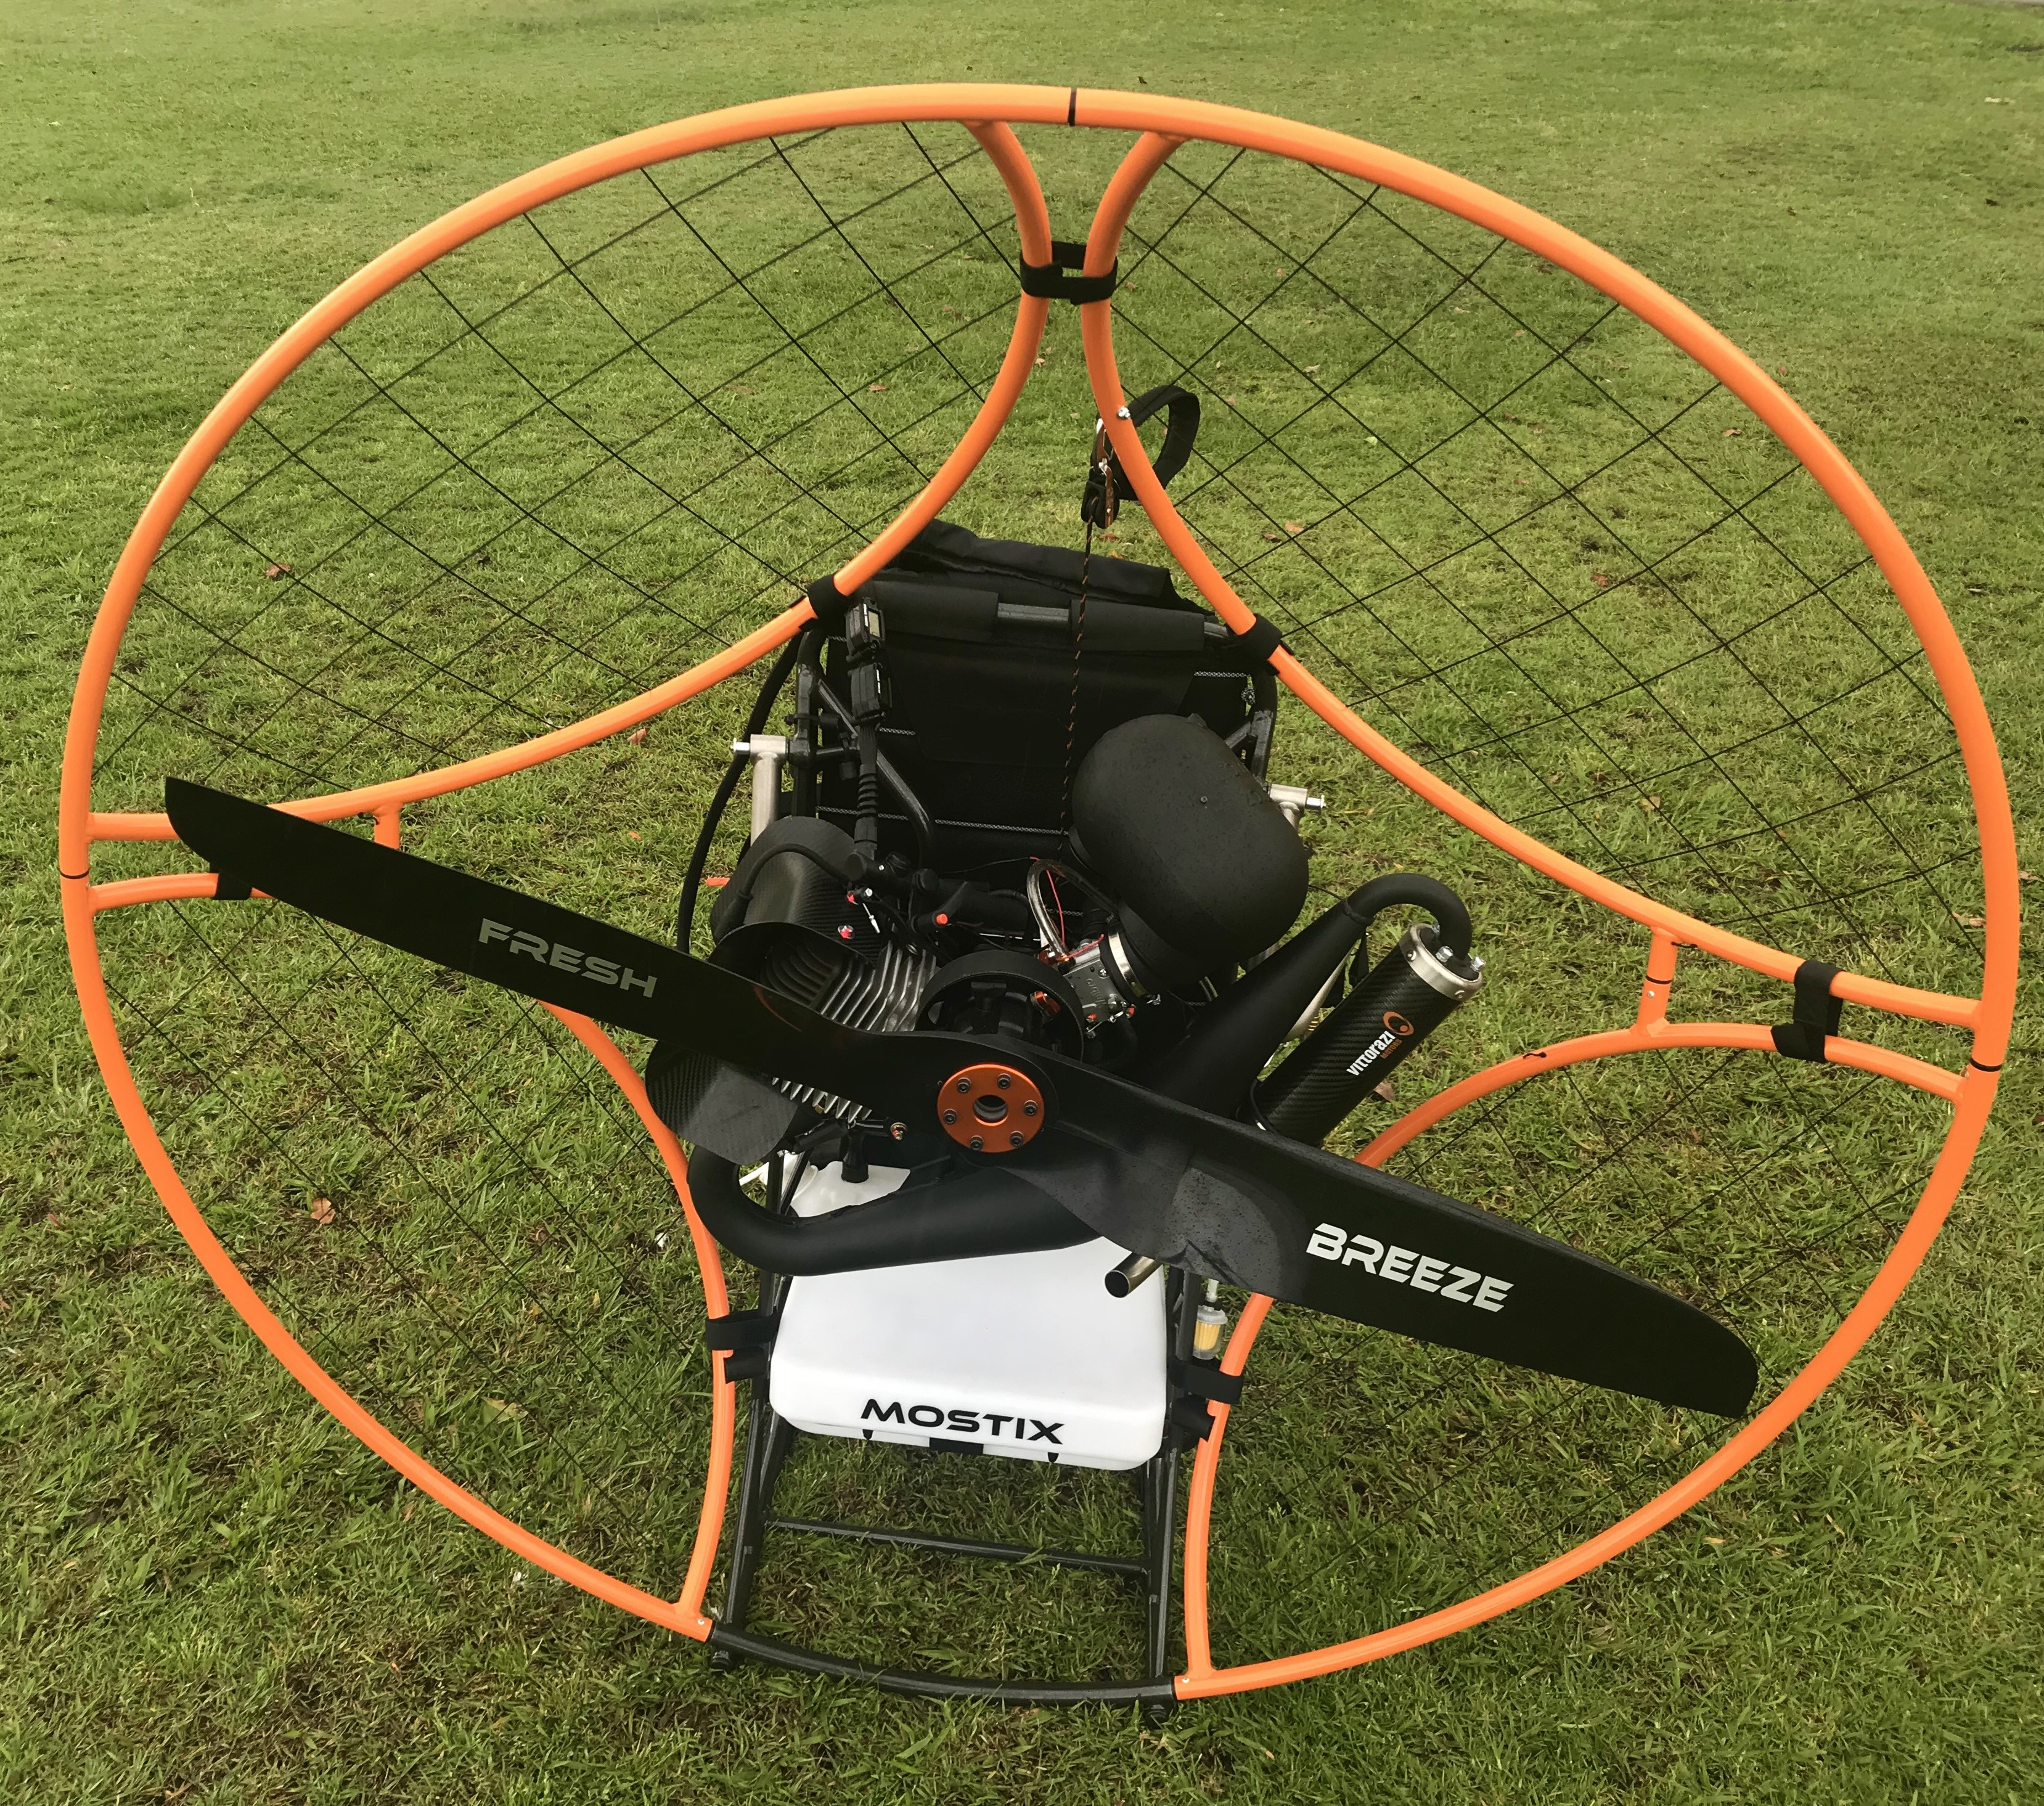 FRESH BREEZE MostiX Paramotor